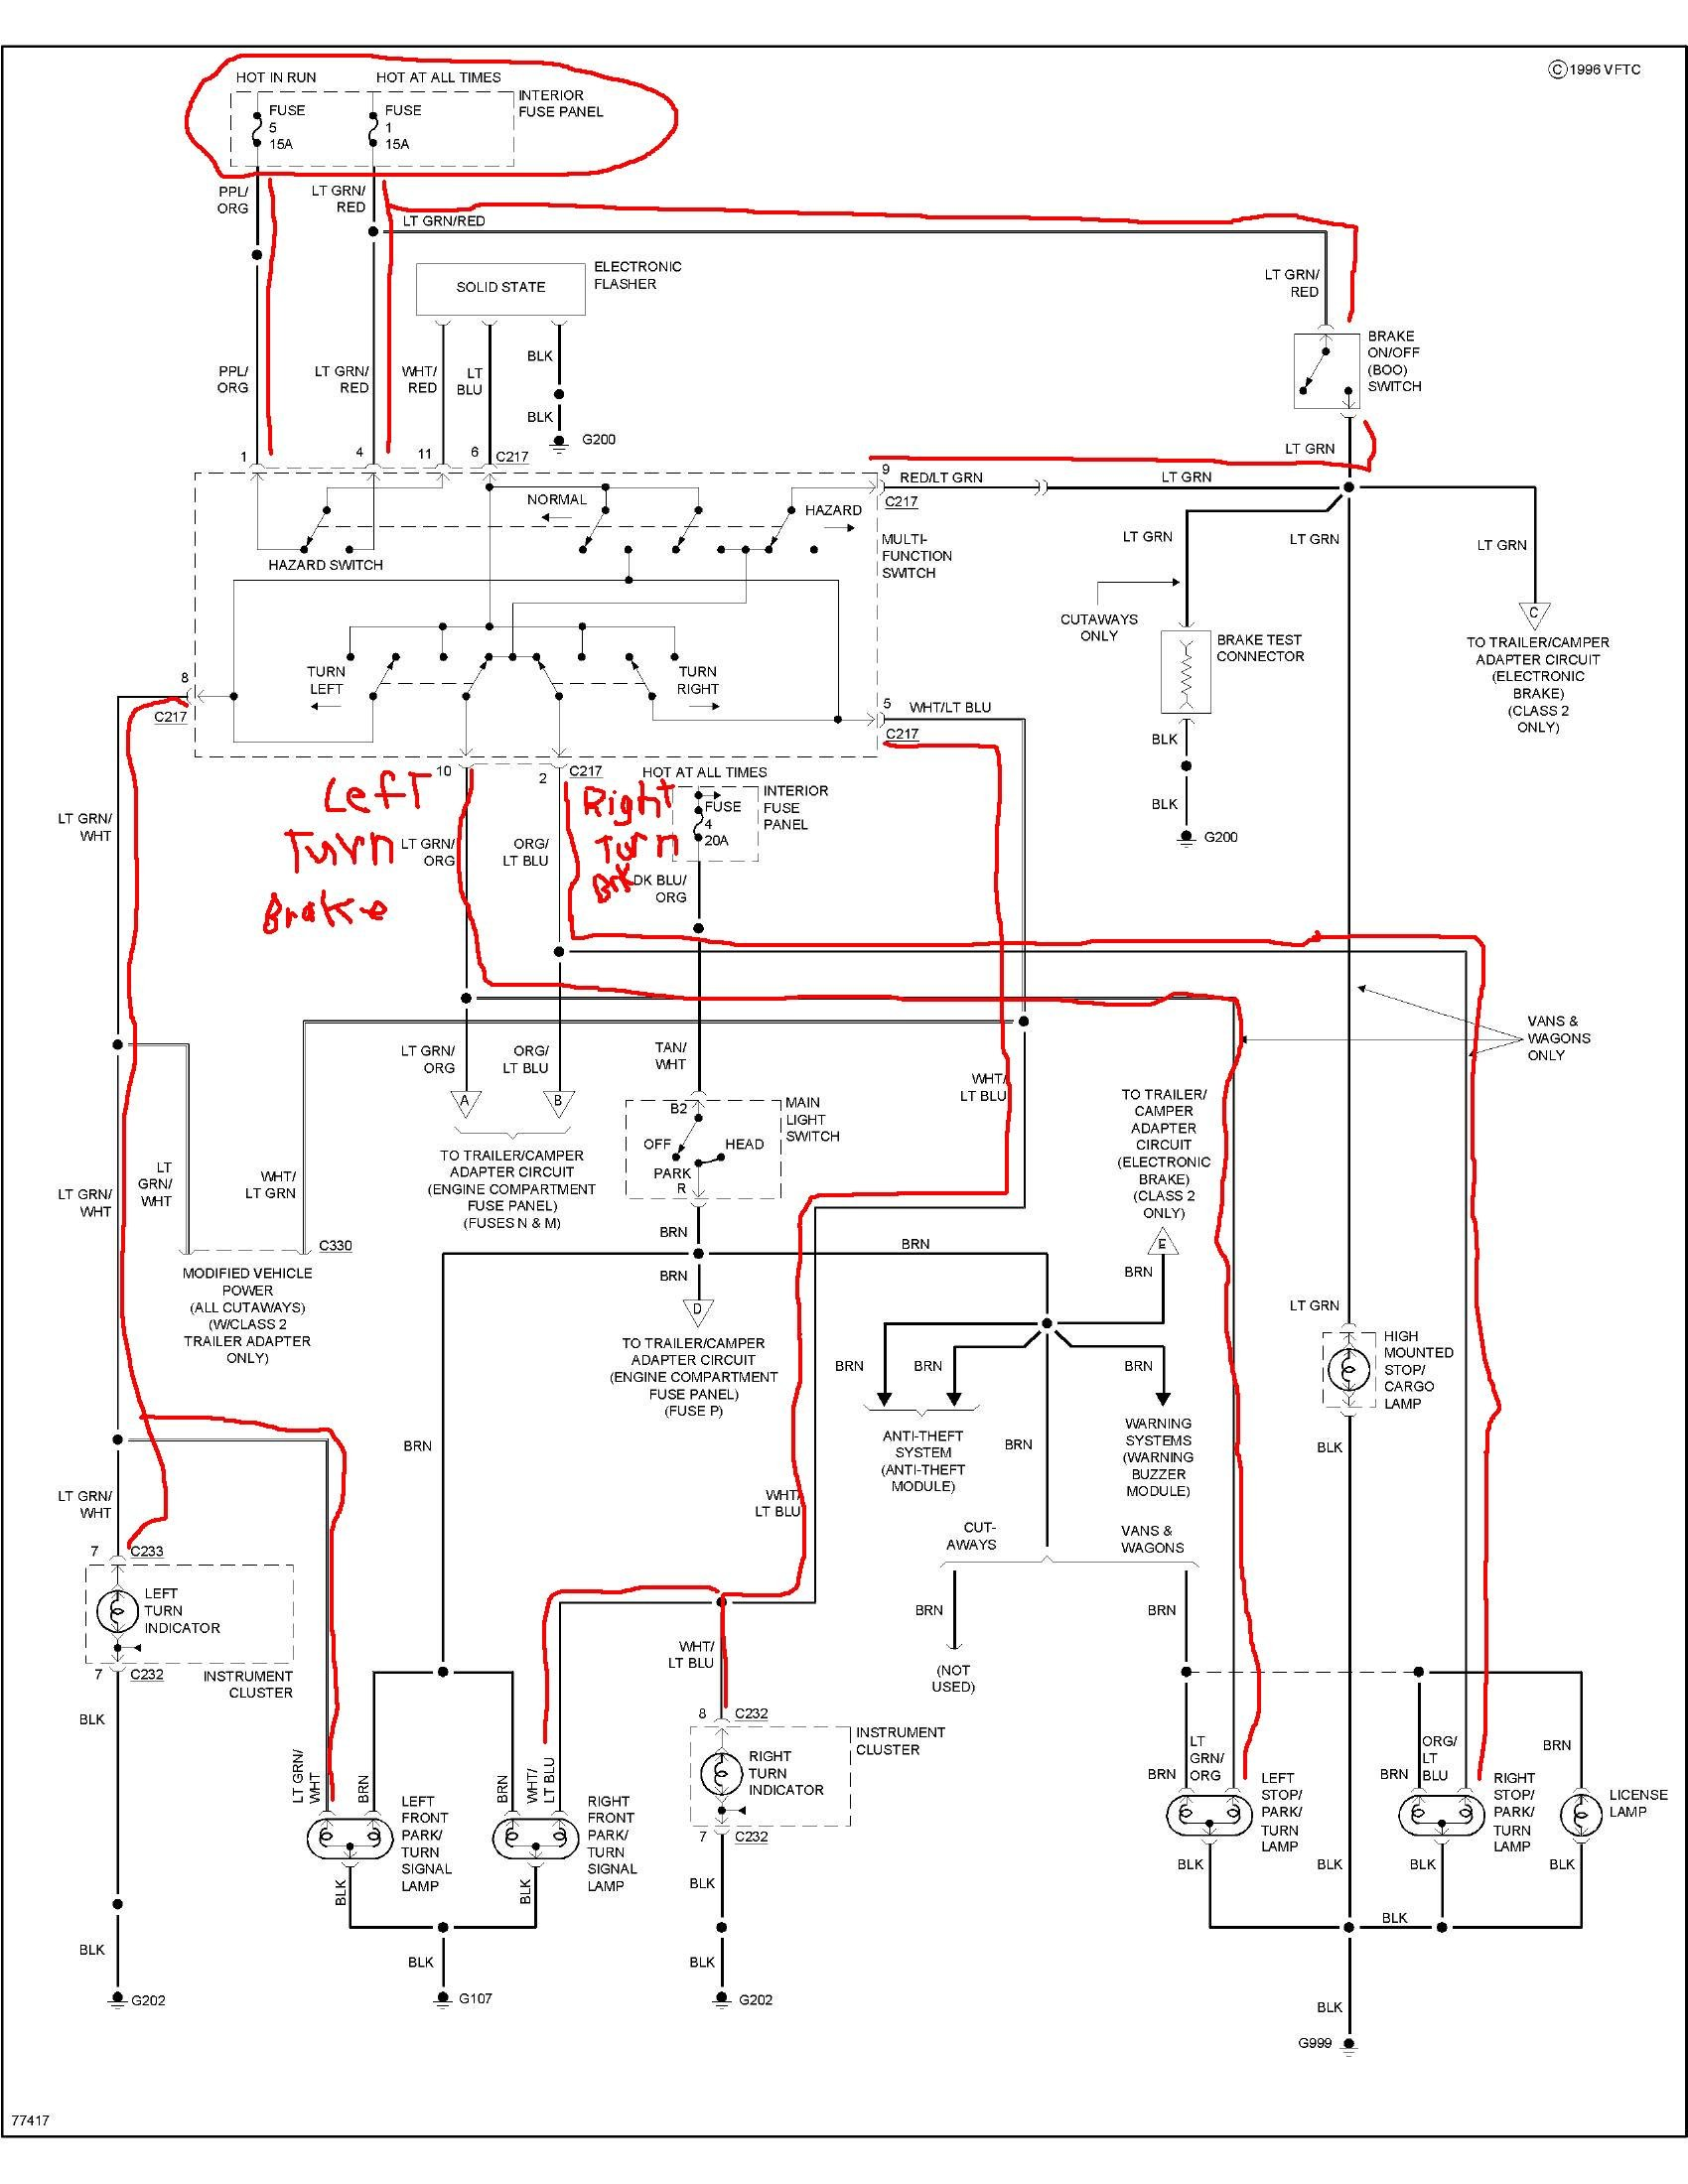 Ford E 350 Lighting Wiring Diagram - Wiring Diagram Write  L Wiring Diagram on honda motorcycle repair diagrams, led circuit diagrams, snatch block diagrams, sincgars radio configurations diagrams, engine diagrams, switch diagrams, gmc fuse box diagrams, hvac diagrams, electrical diagrams, transformer diagrams, battery diagrams, friendship bracelet diagrams, smart car diagrams, pinout diagrams, troubleshooting diagrams, internet of things diagrams, lighting diagrams, series and parallel circuits diagrams, electronic circuit diagrams, motor diagrams,